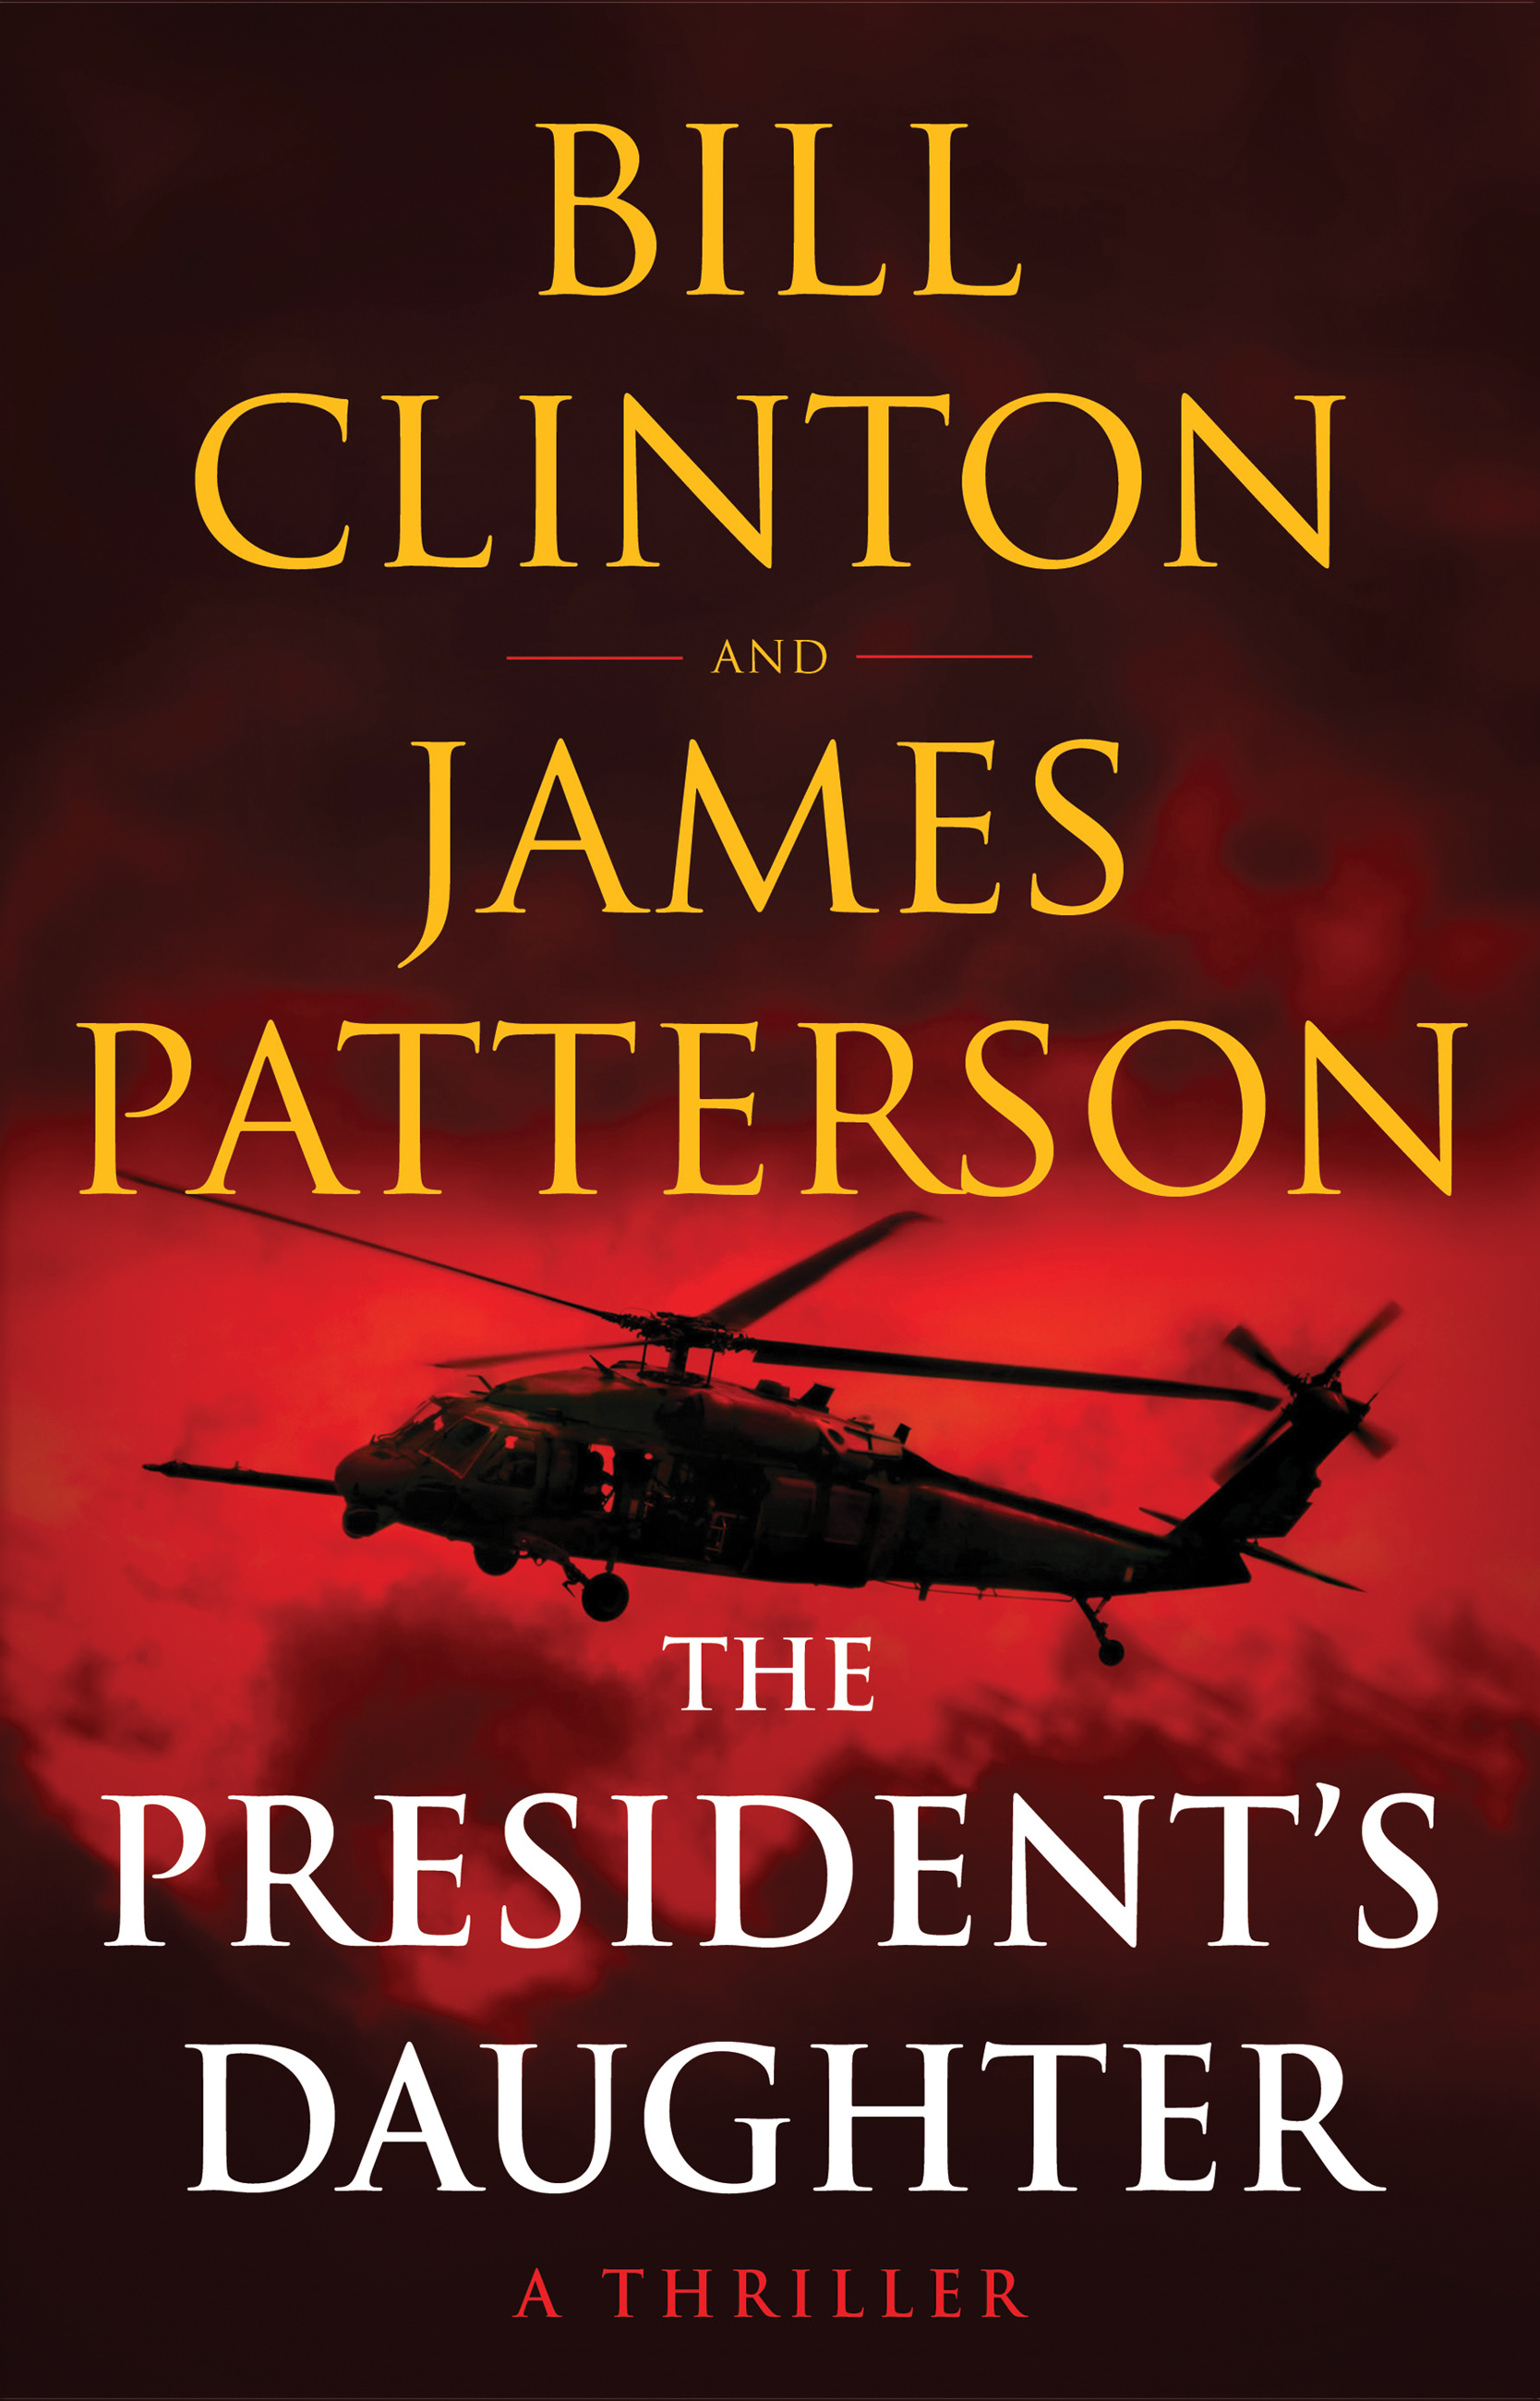 The President's Daughter A Thriller